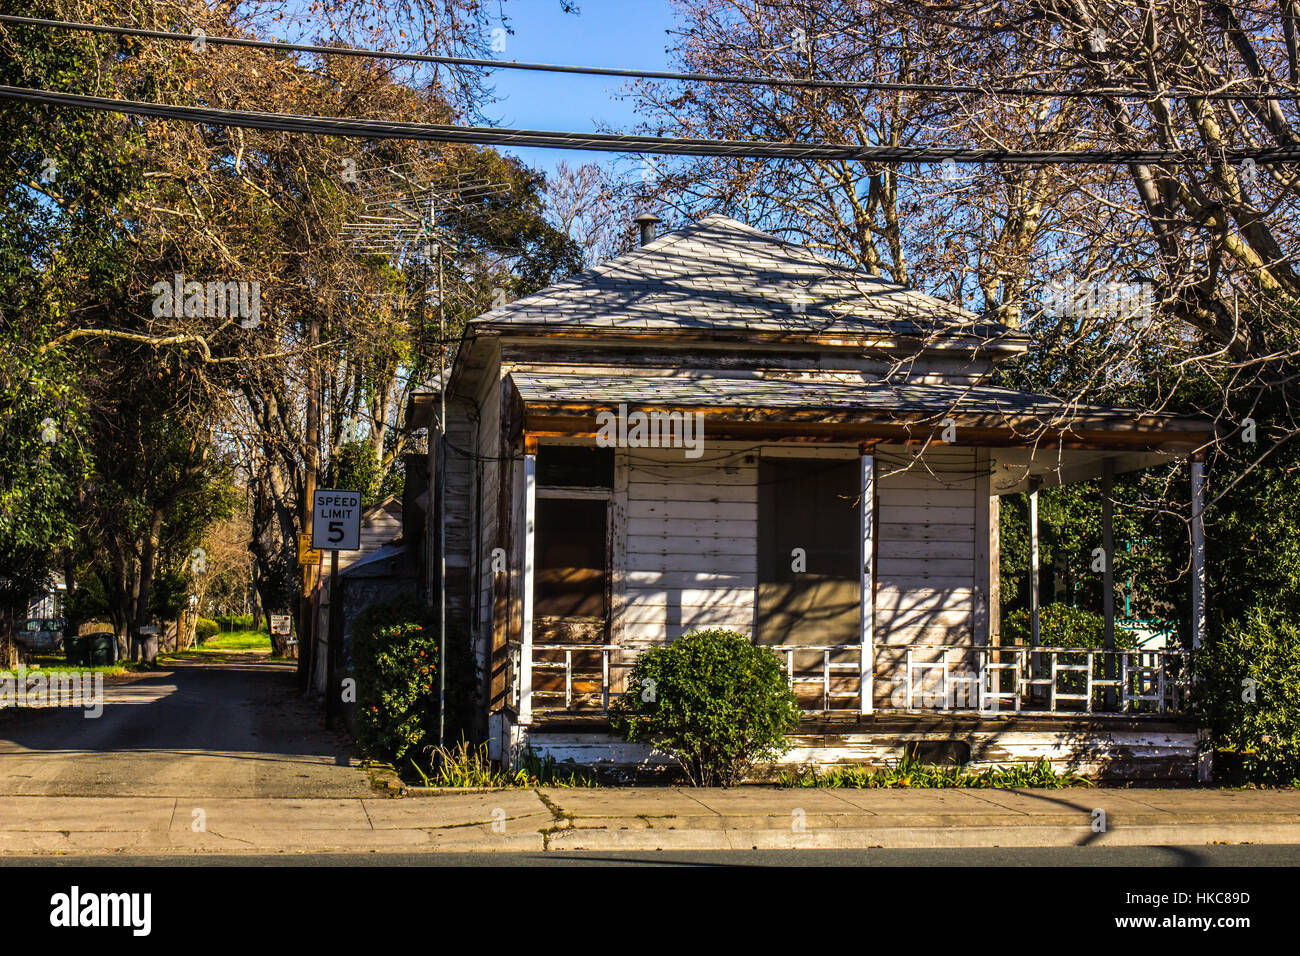 Old Boarded Up House In Disrepair - Stock Image